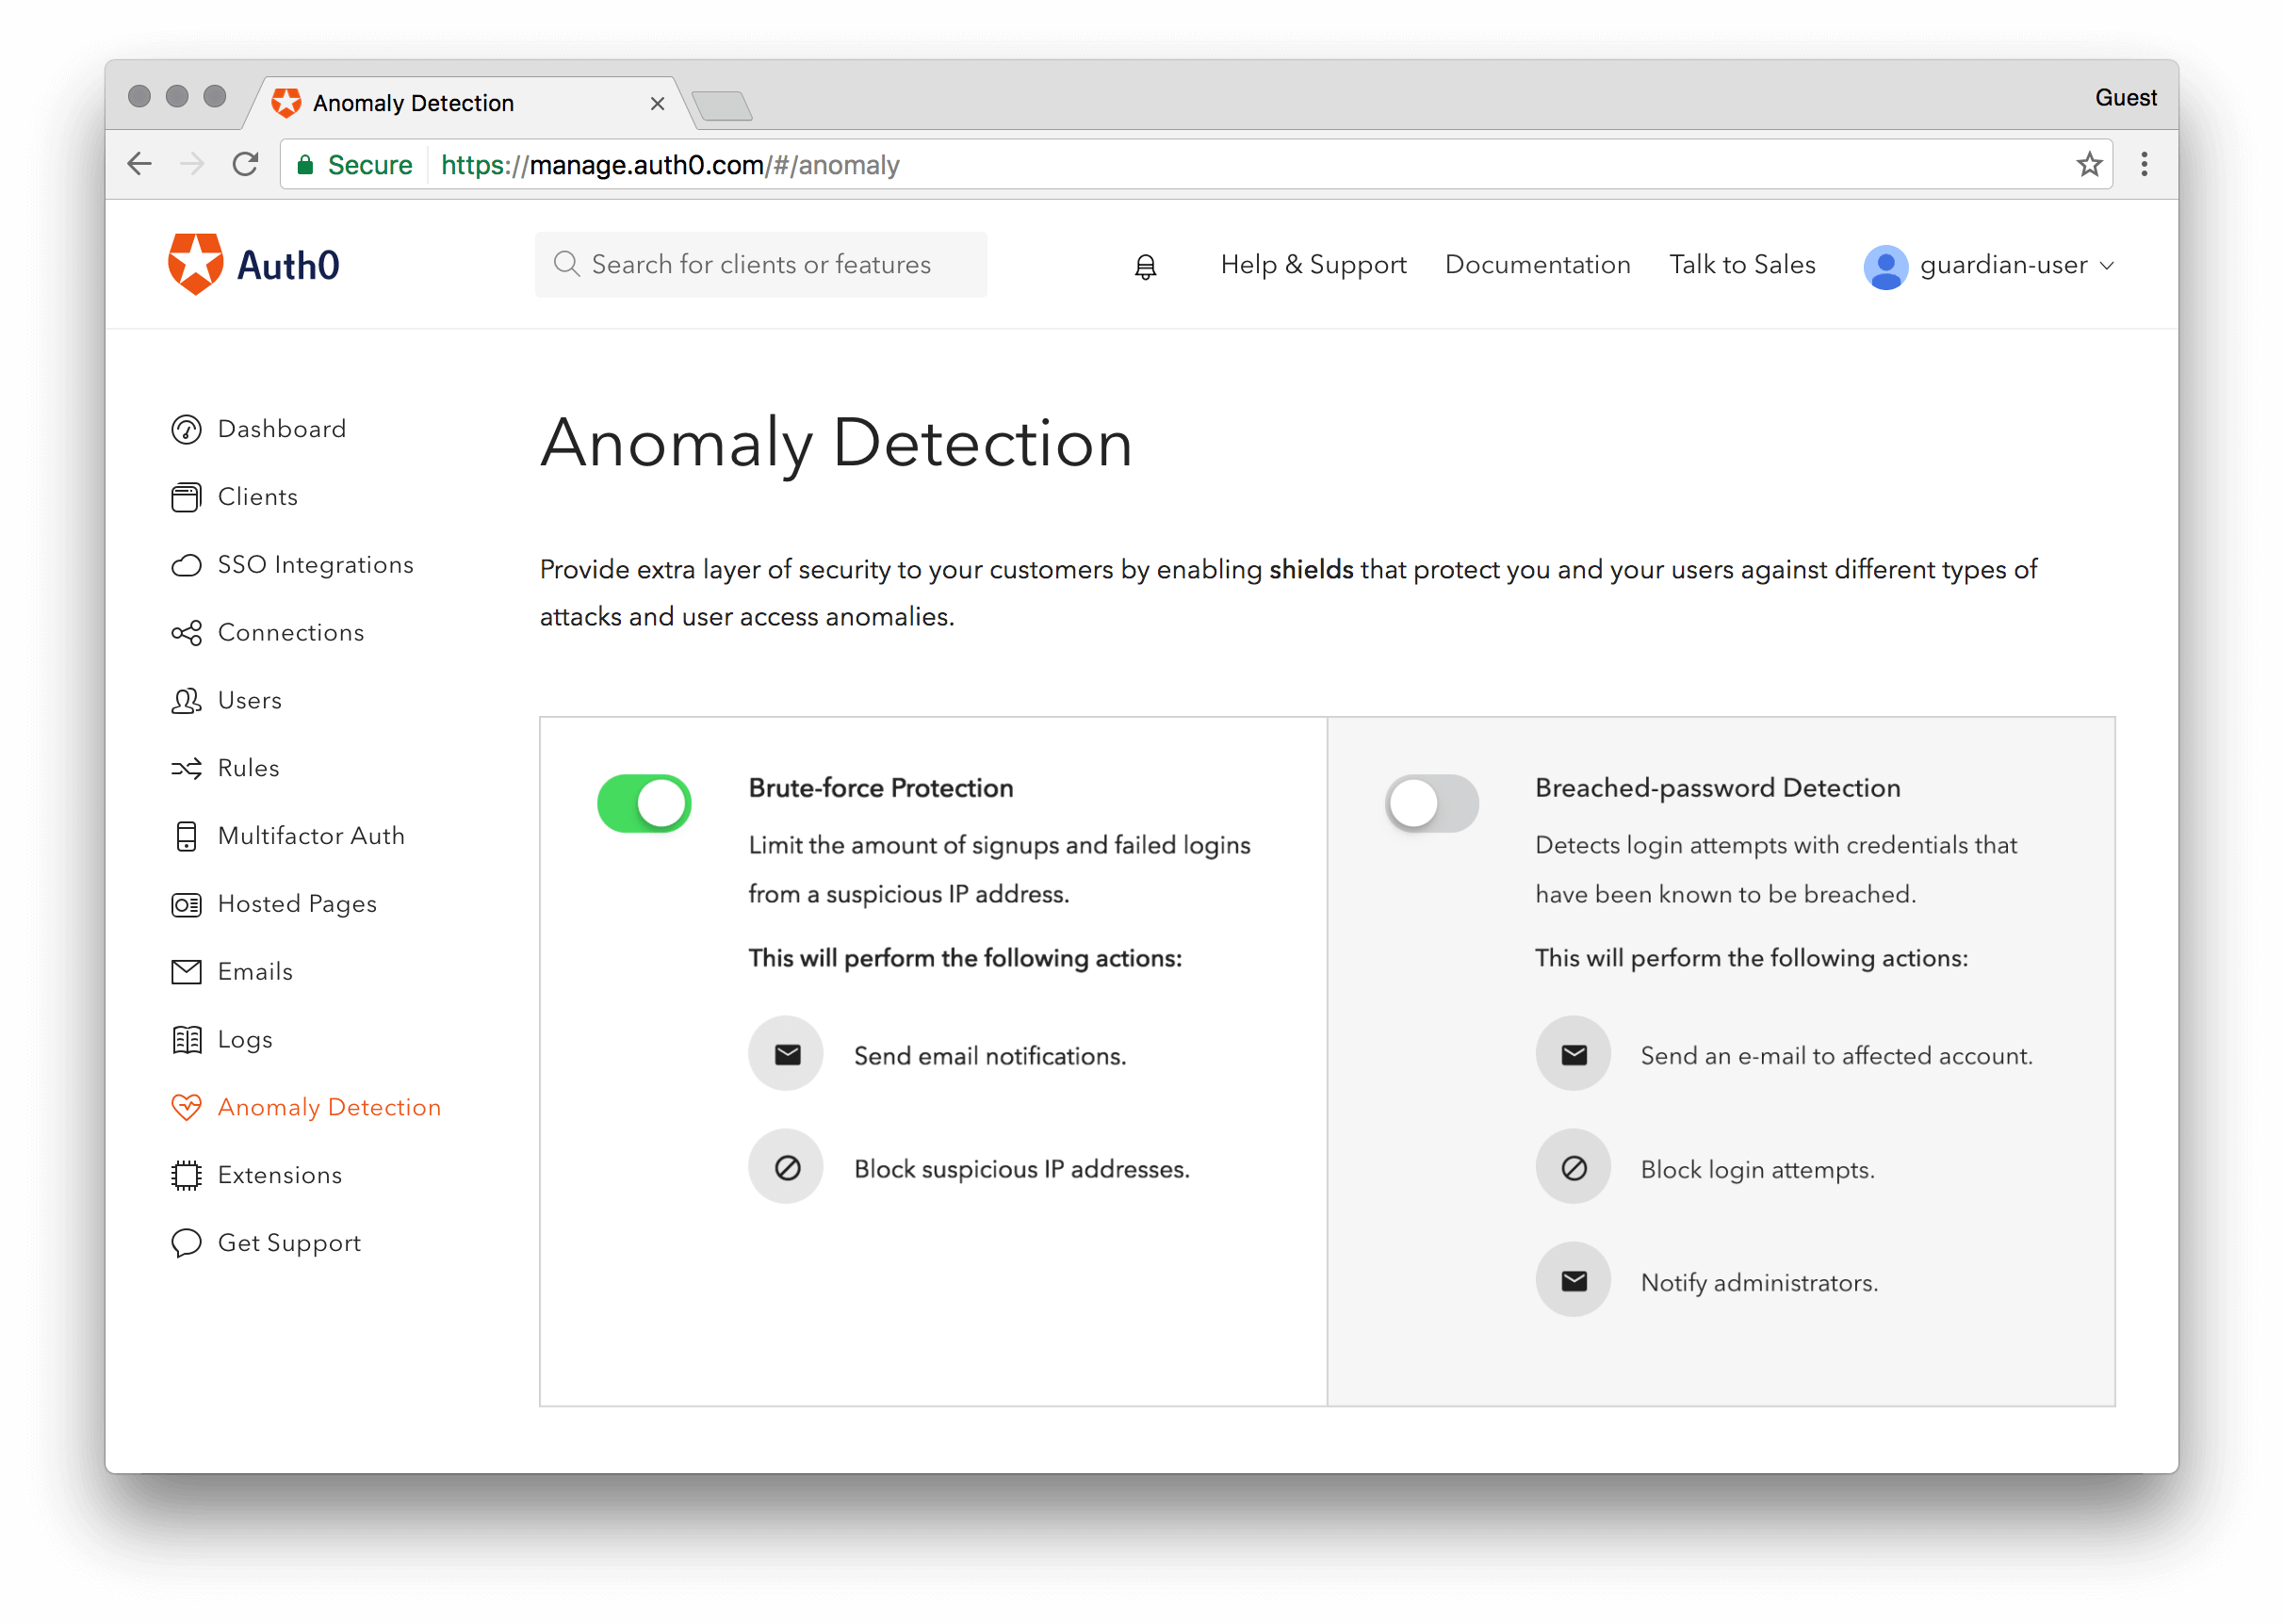 Auth0 has anomaly detection to protect consumer information